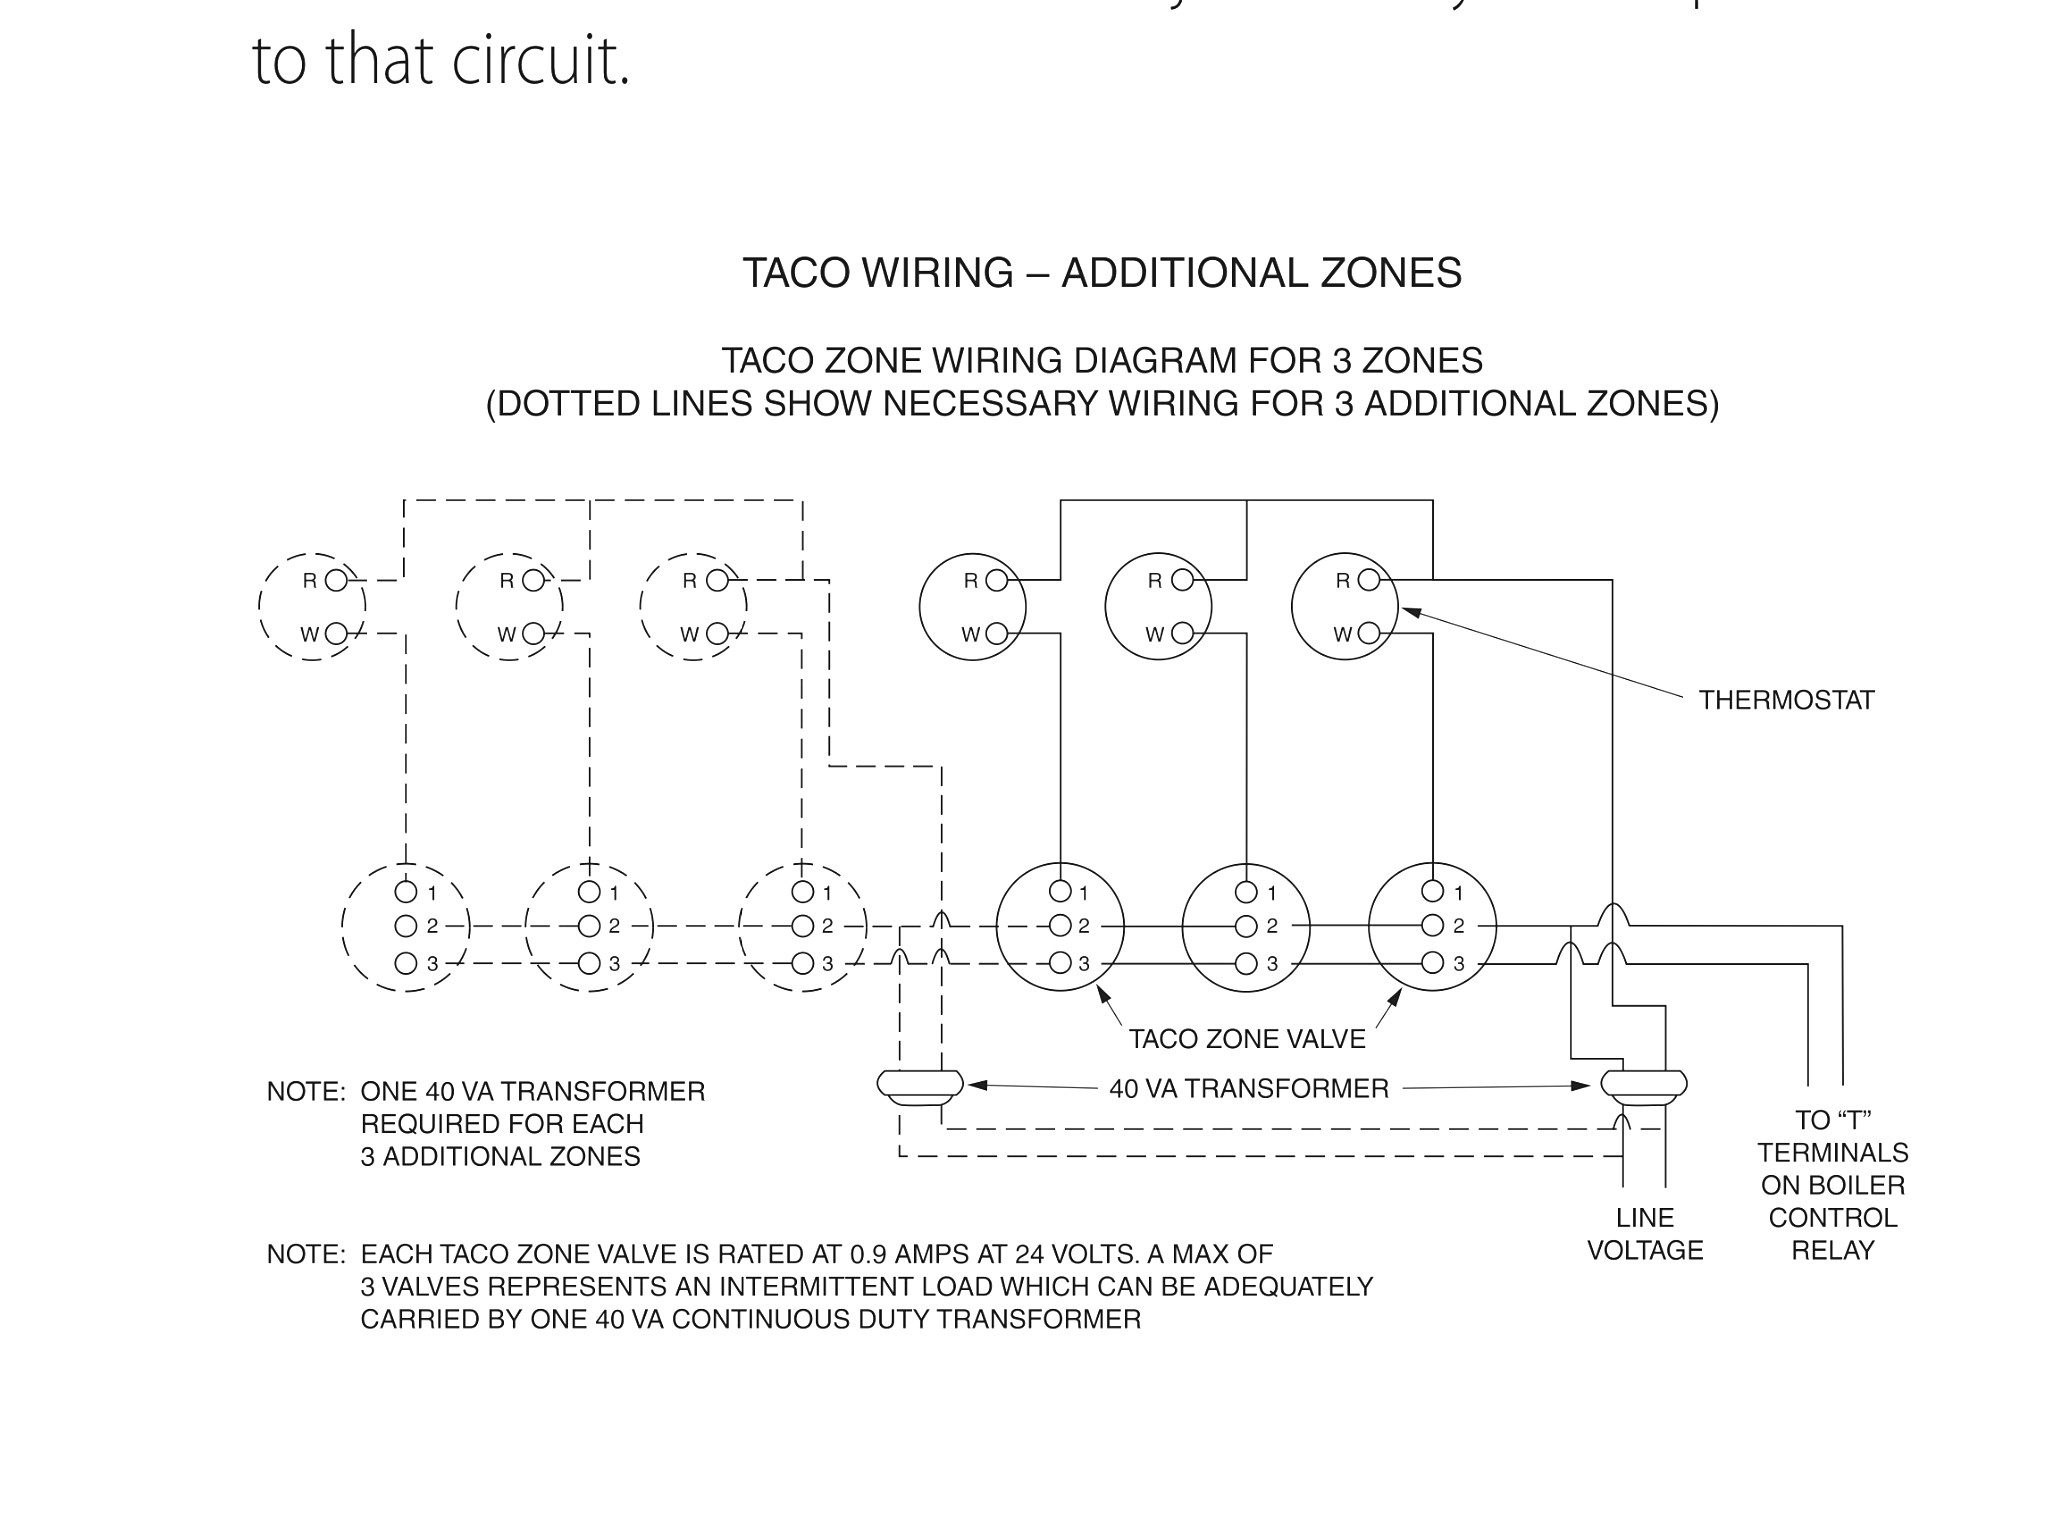 Taco Zone Valves Wiring Diagram Circulating Pump Wiring Throughout Taco Zone Valve Diagram for